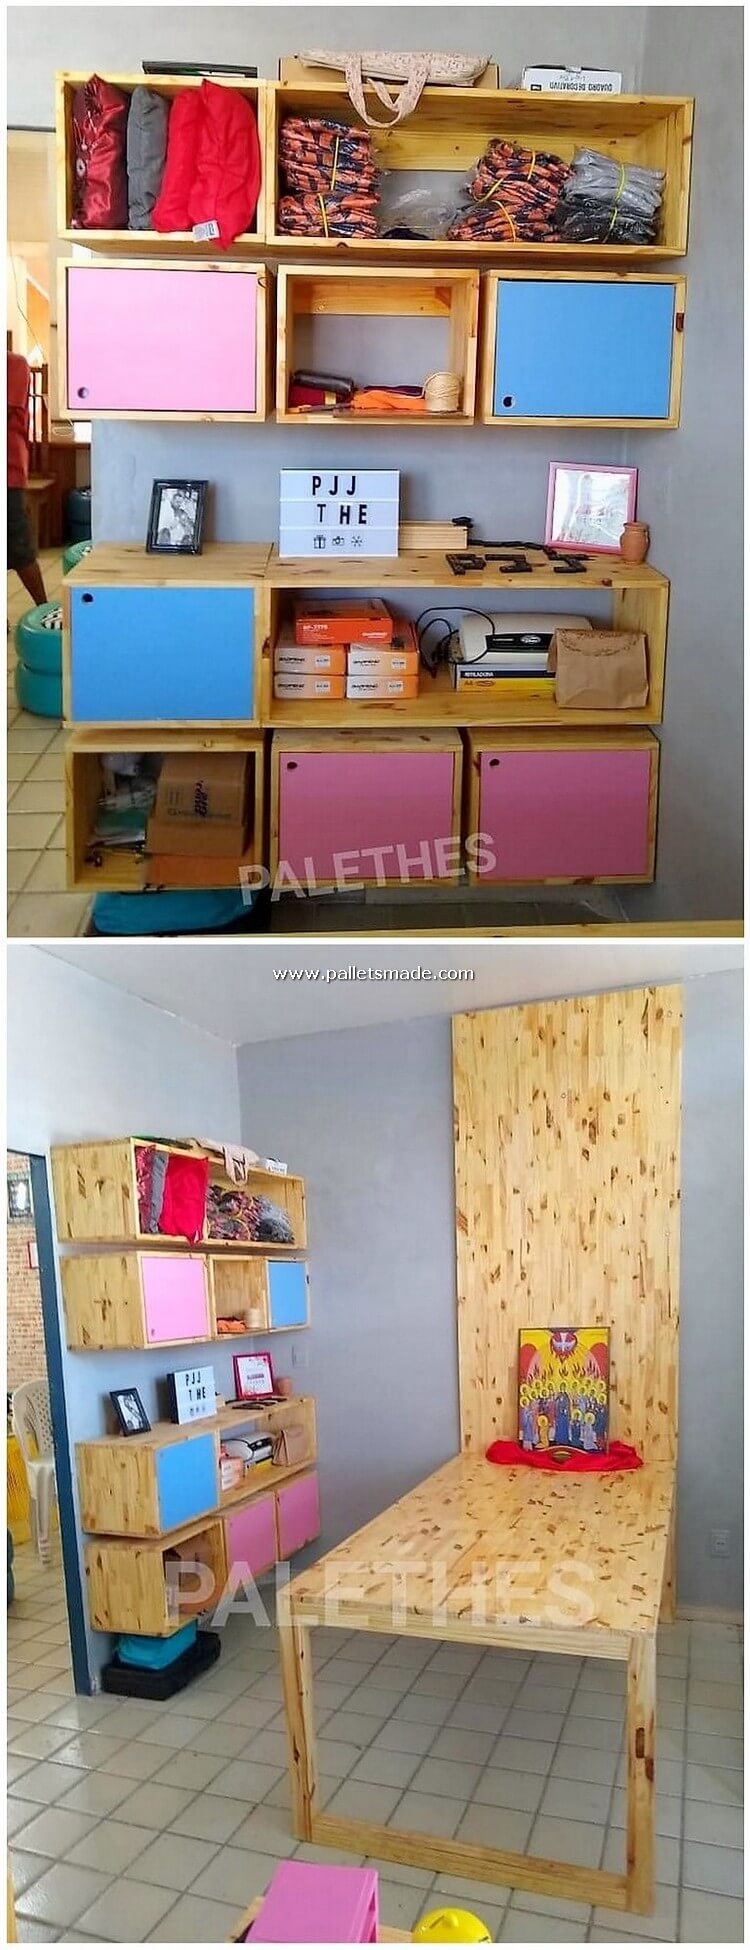 Pallet Wall Shelving Unit and Desk Table